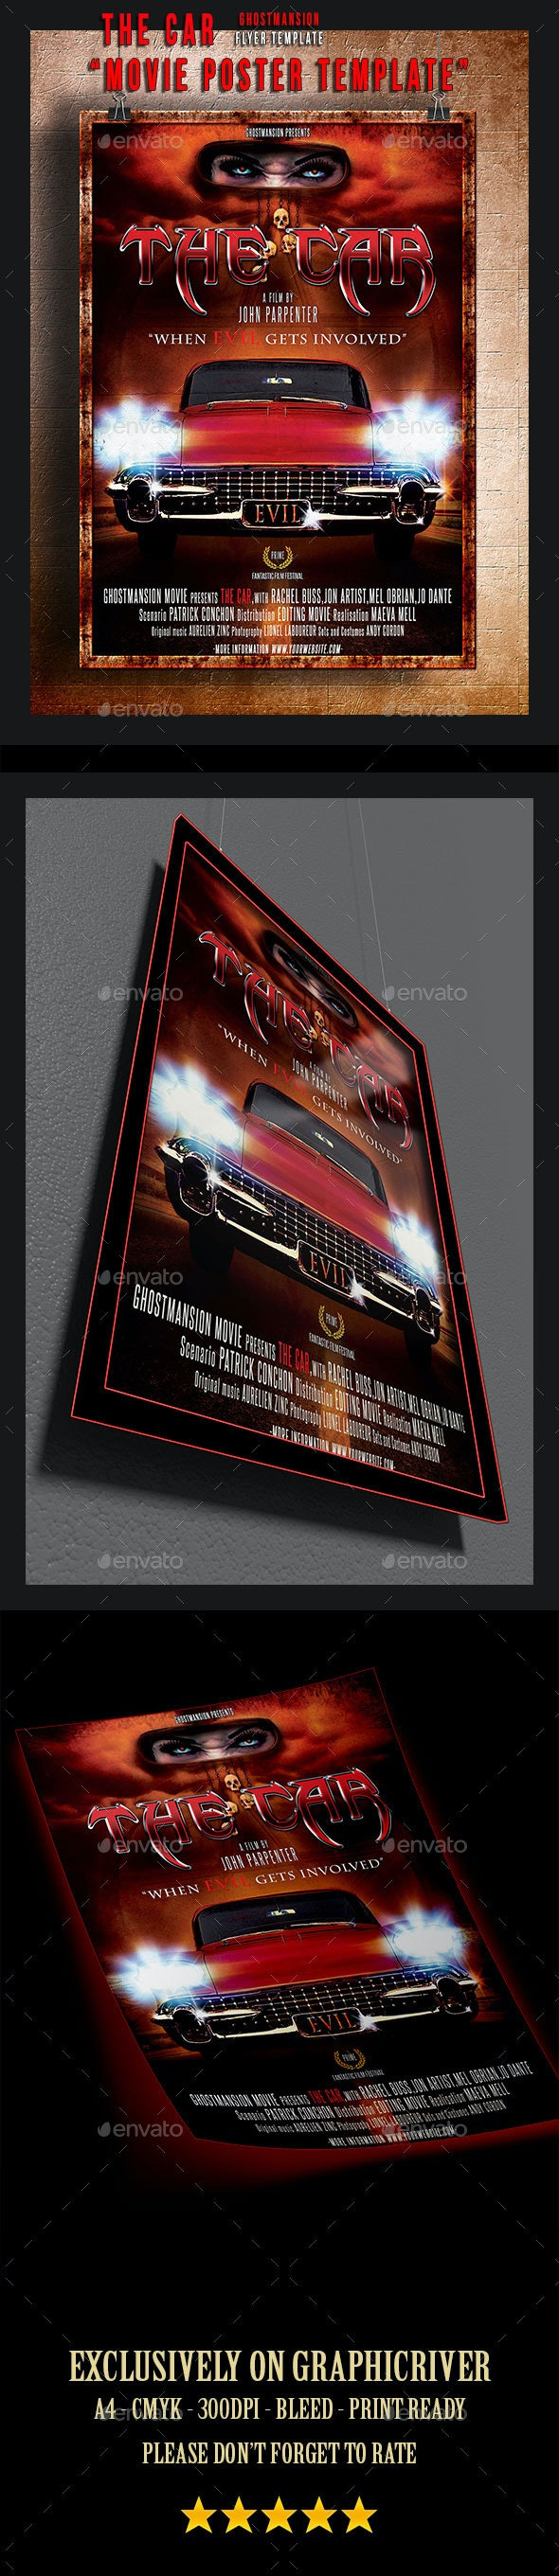 Fantastic Movie Poster Template - Miscellaneous Events